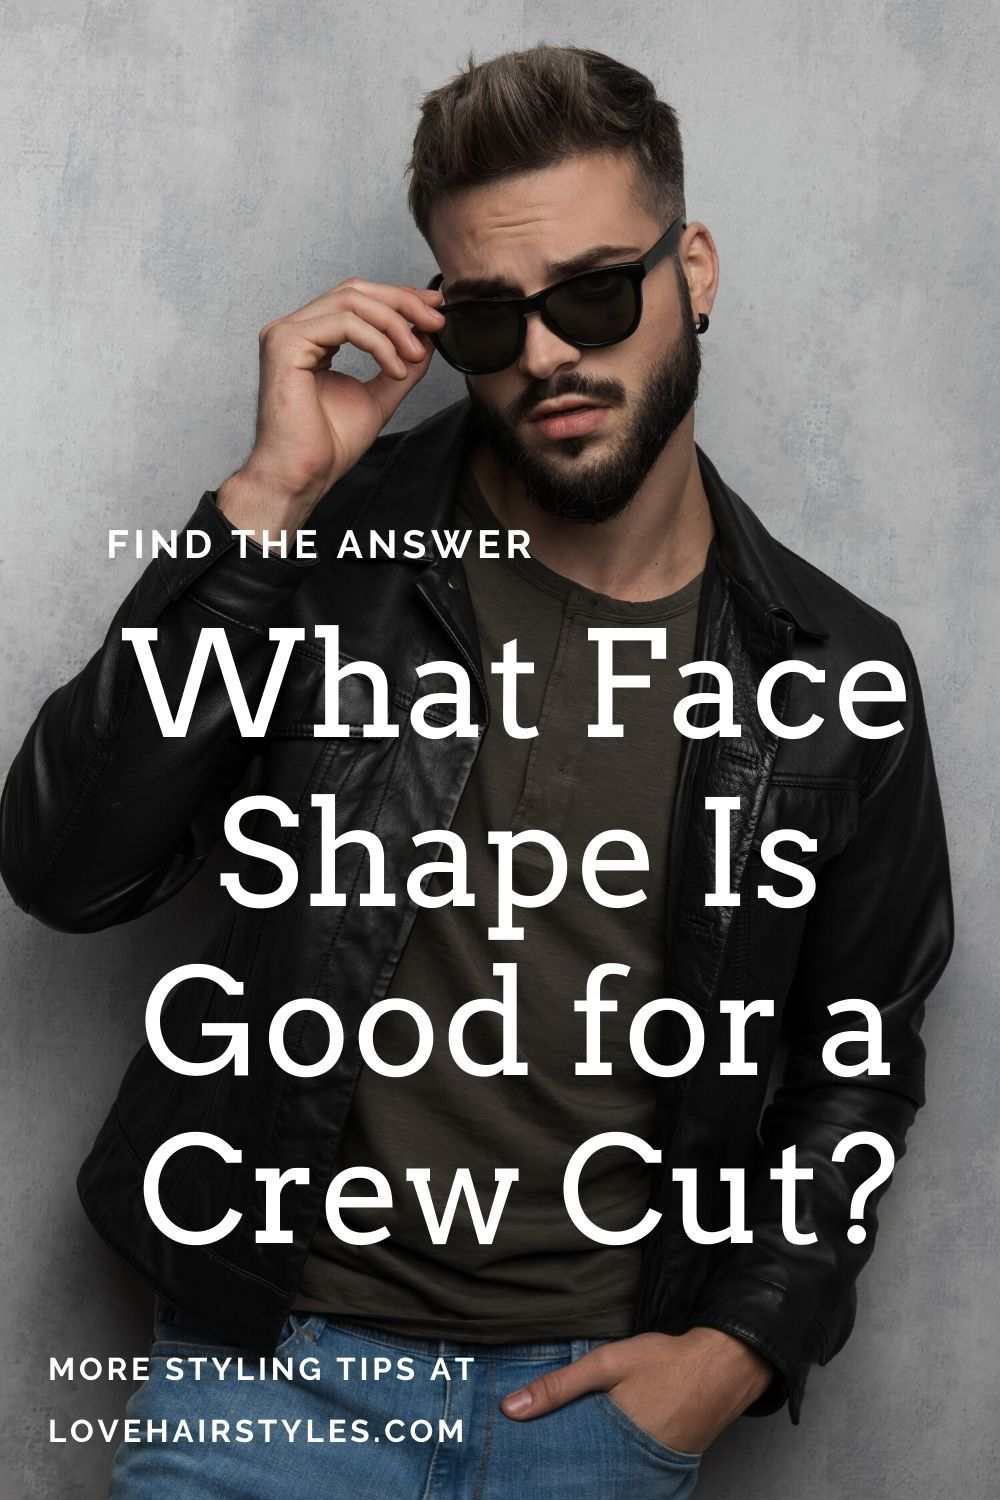 What Face Shape Is Good for a Crew Cut?